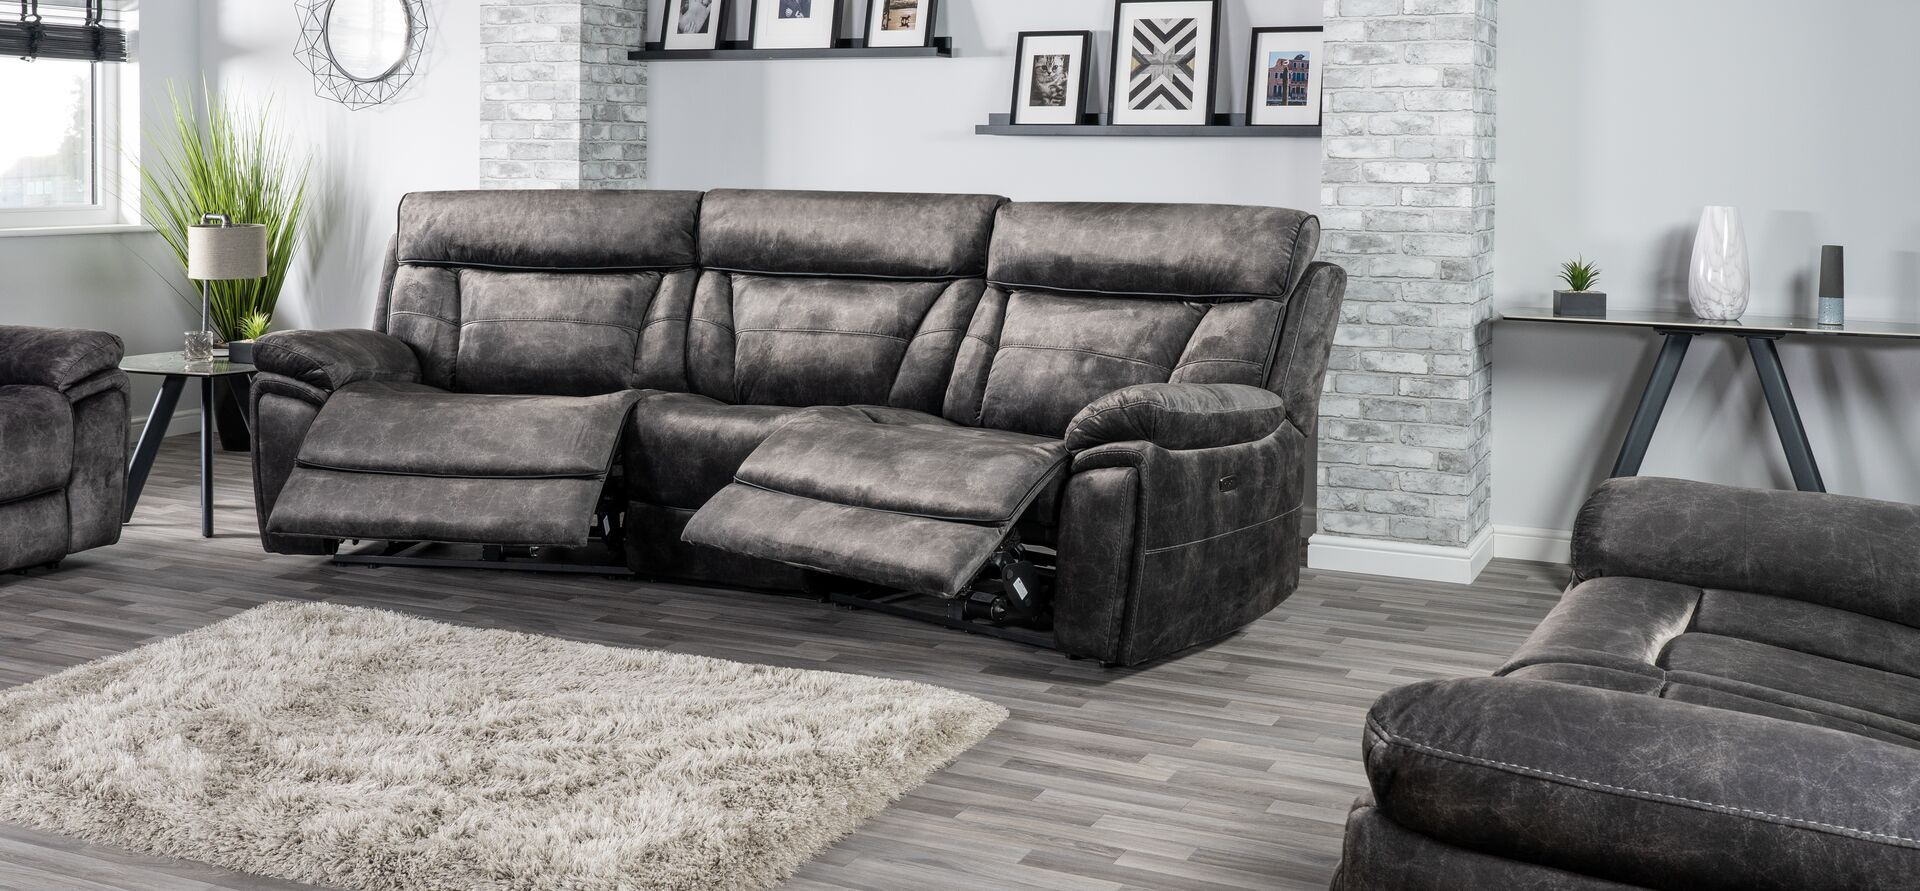 Endurance Nero 4 Seater Curve Power Recliner Sofa With Images